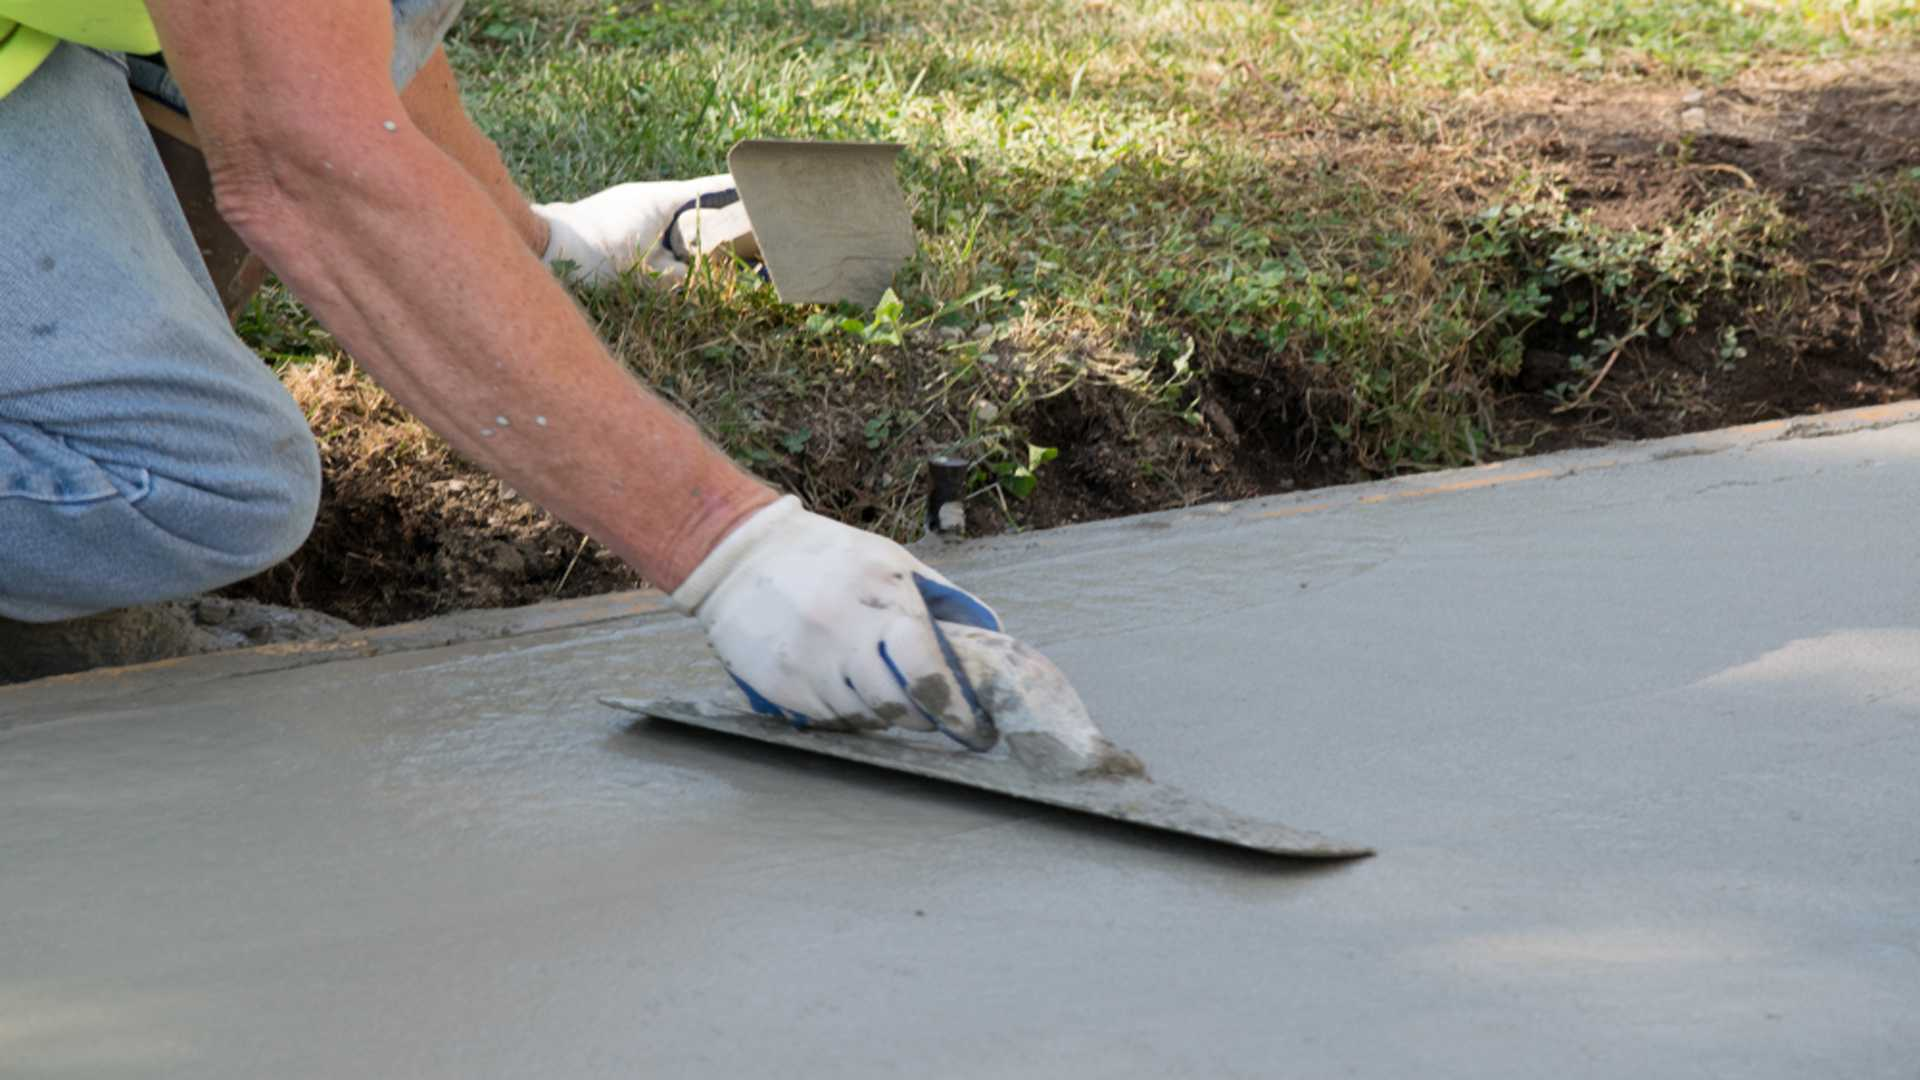 Man Pouring Concrete Driveway Concrete Services Gutter Solutions and Home Improvements Pensacola FL 850 776 1782